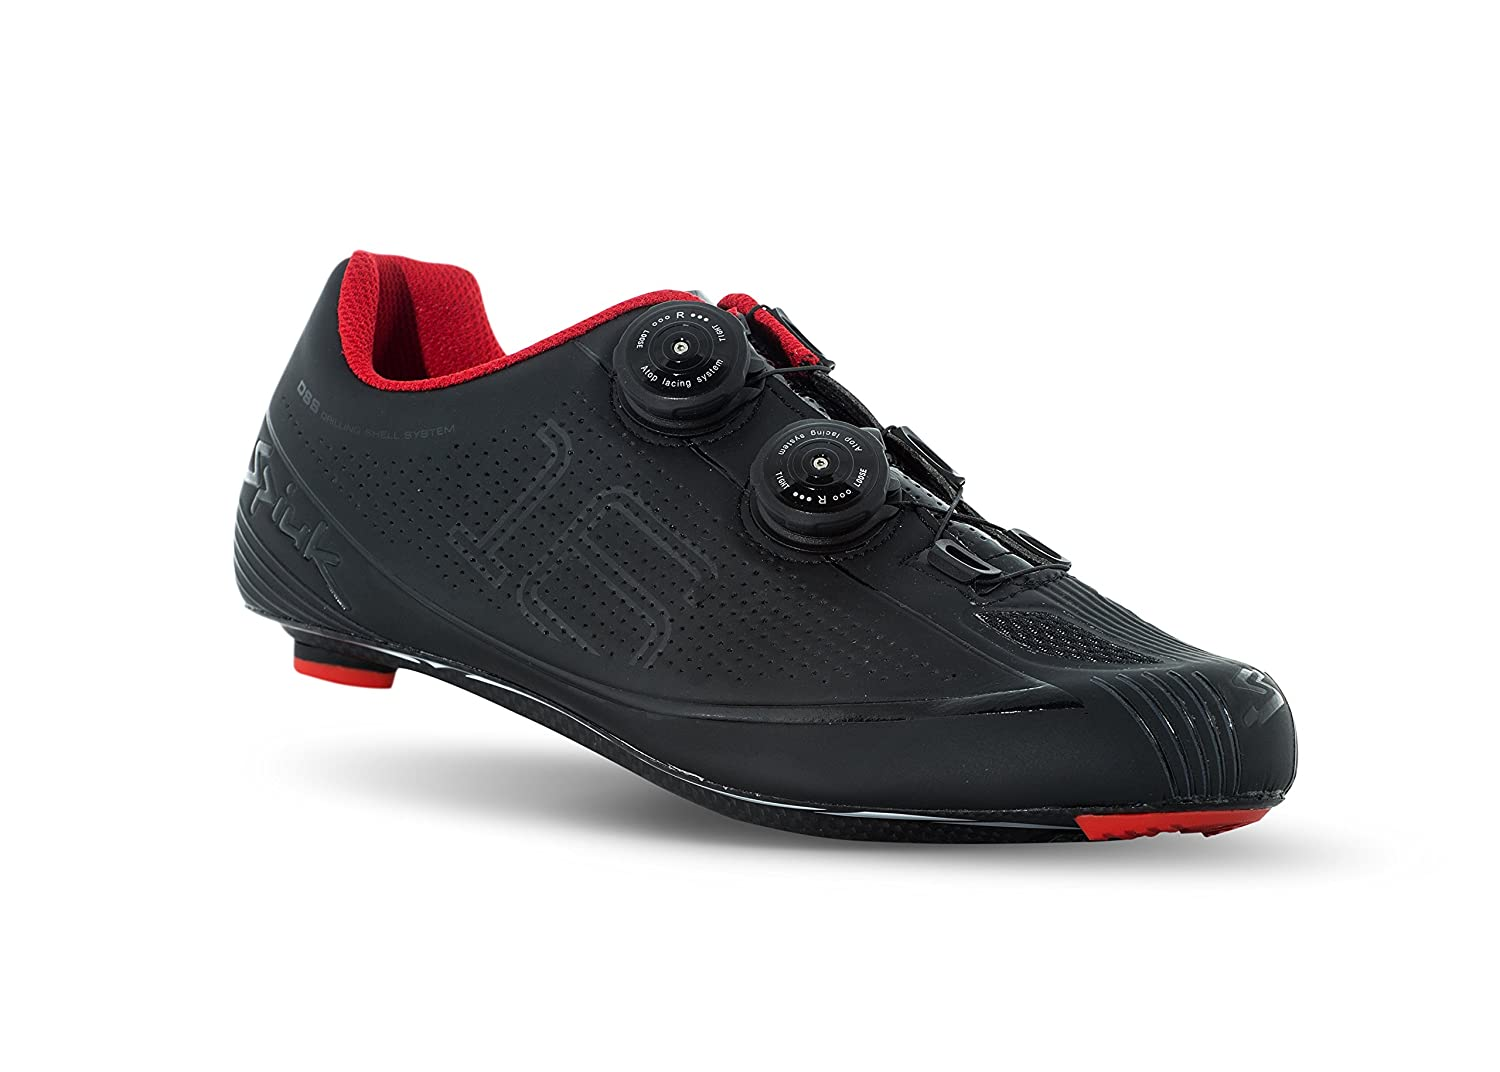 Spiuk 16 Road Carbono - Sportschuhe